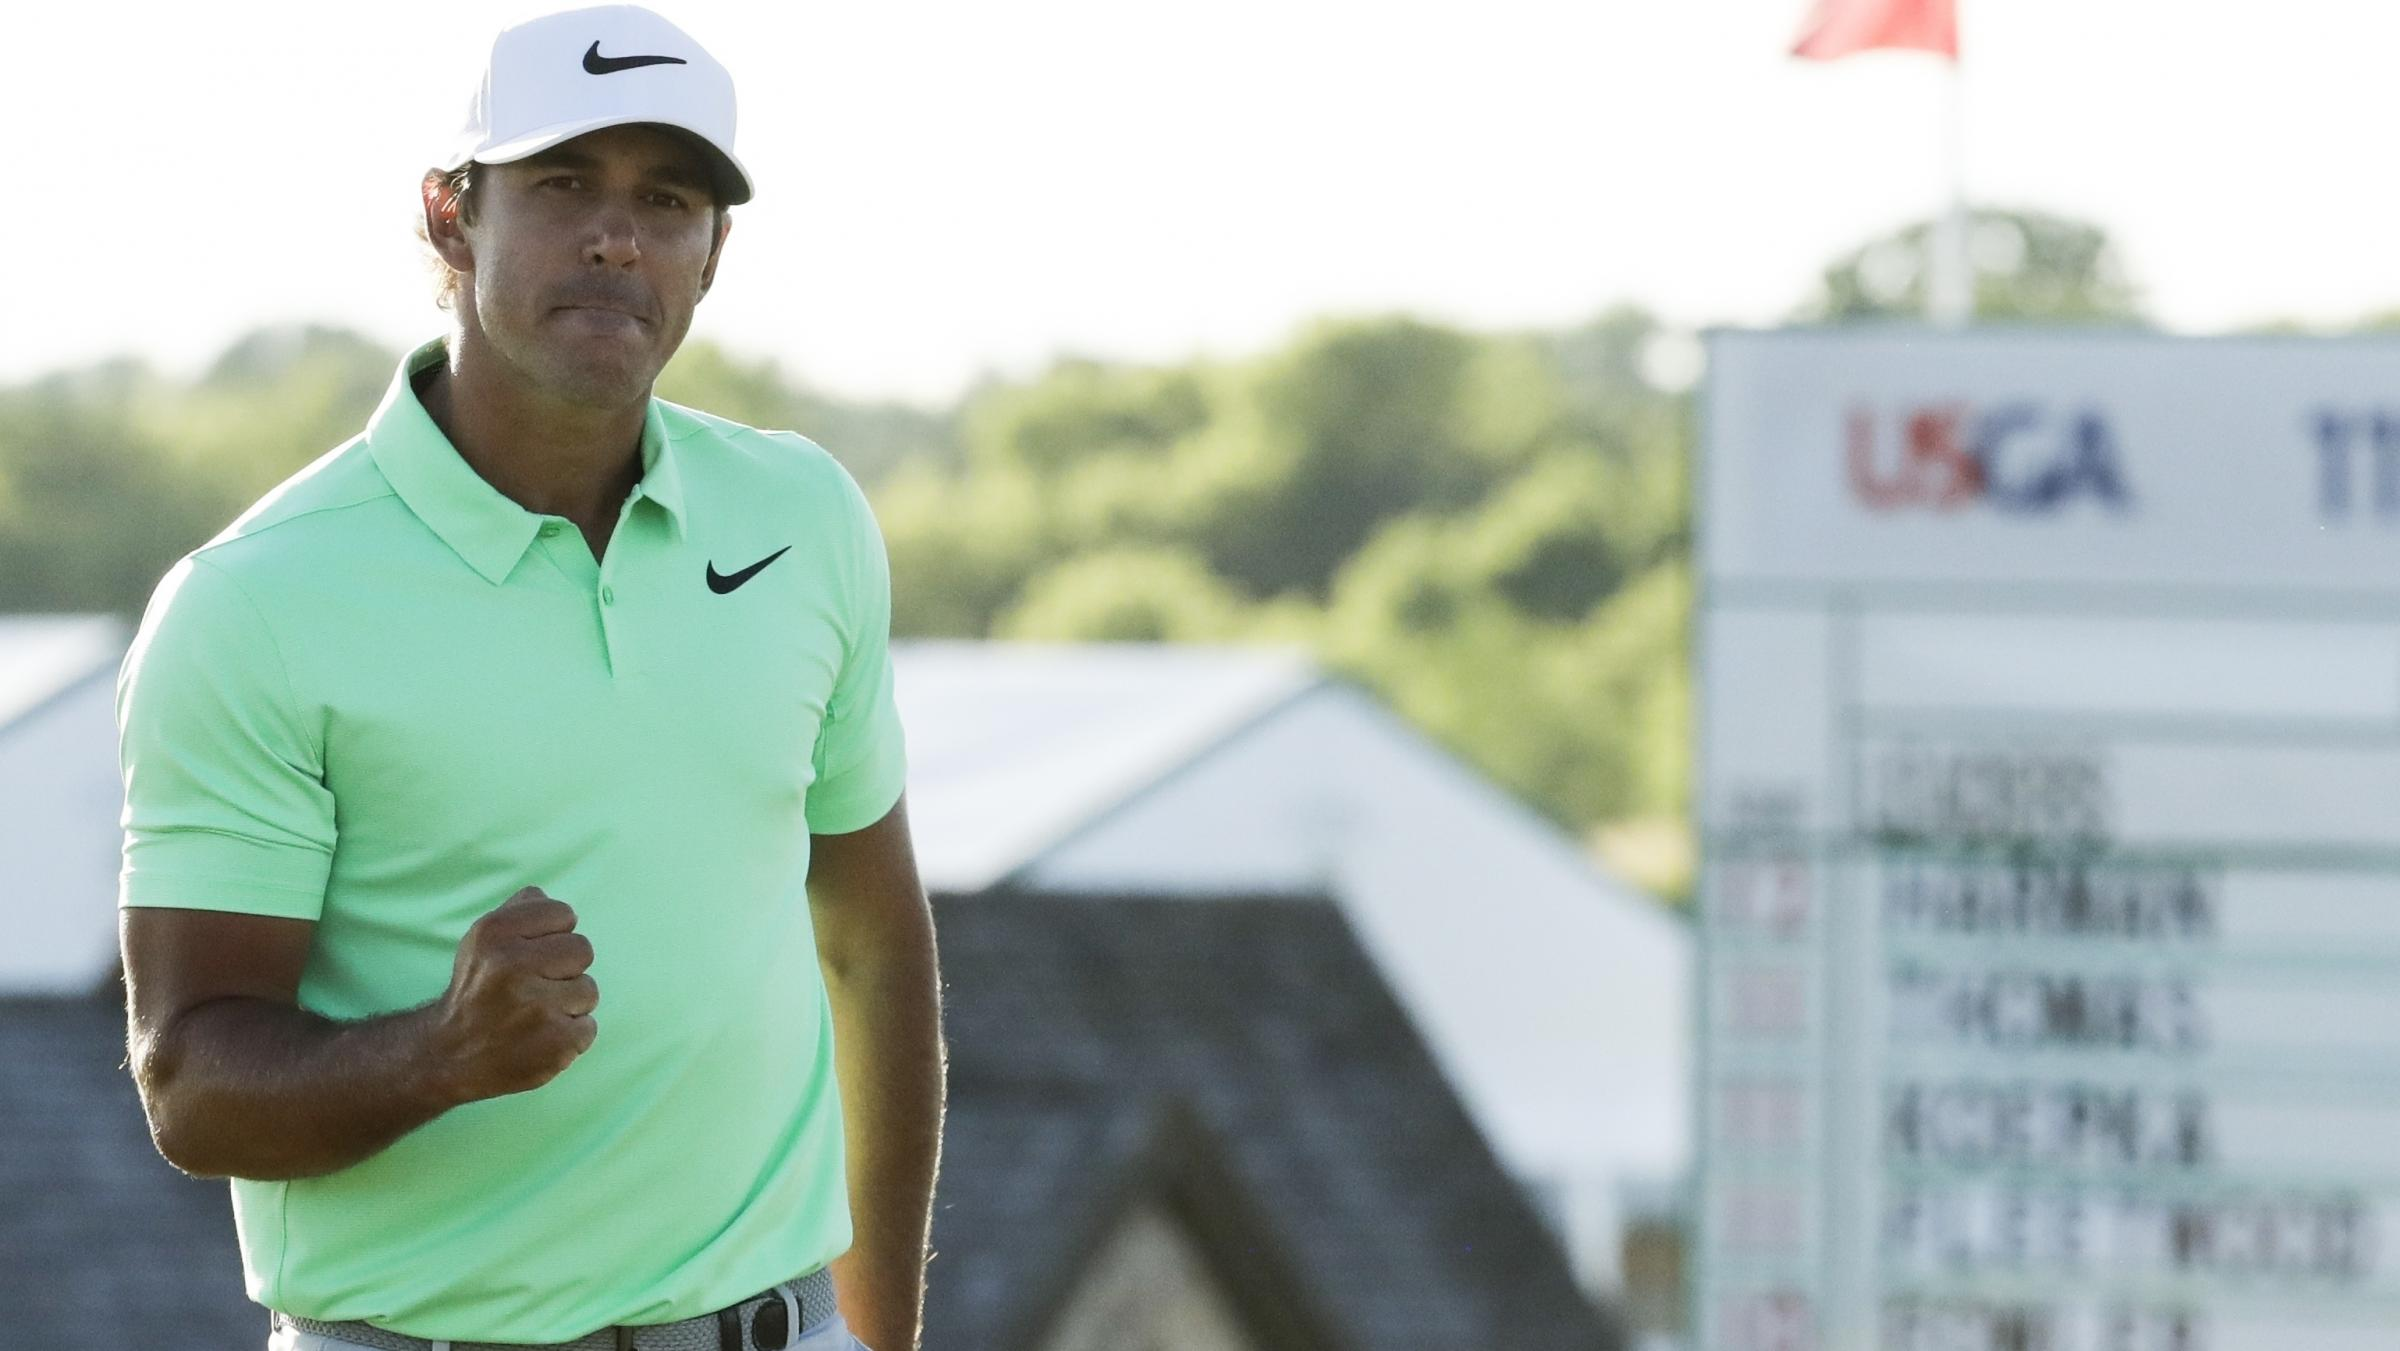 Brooks Koepka ties tournament-record score 16-under to win US Open